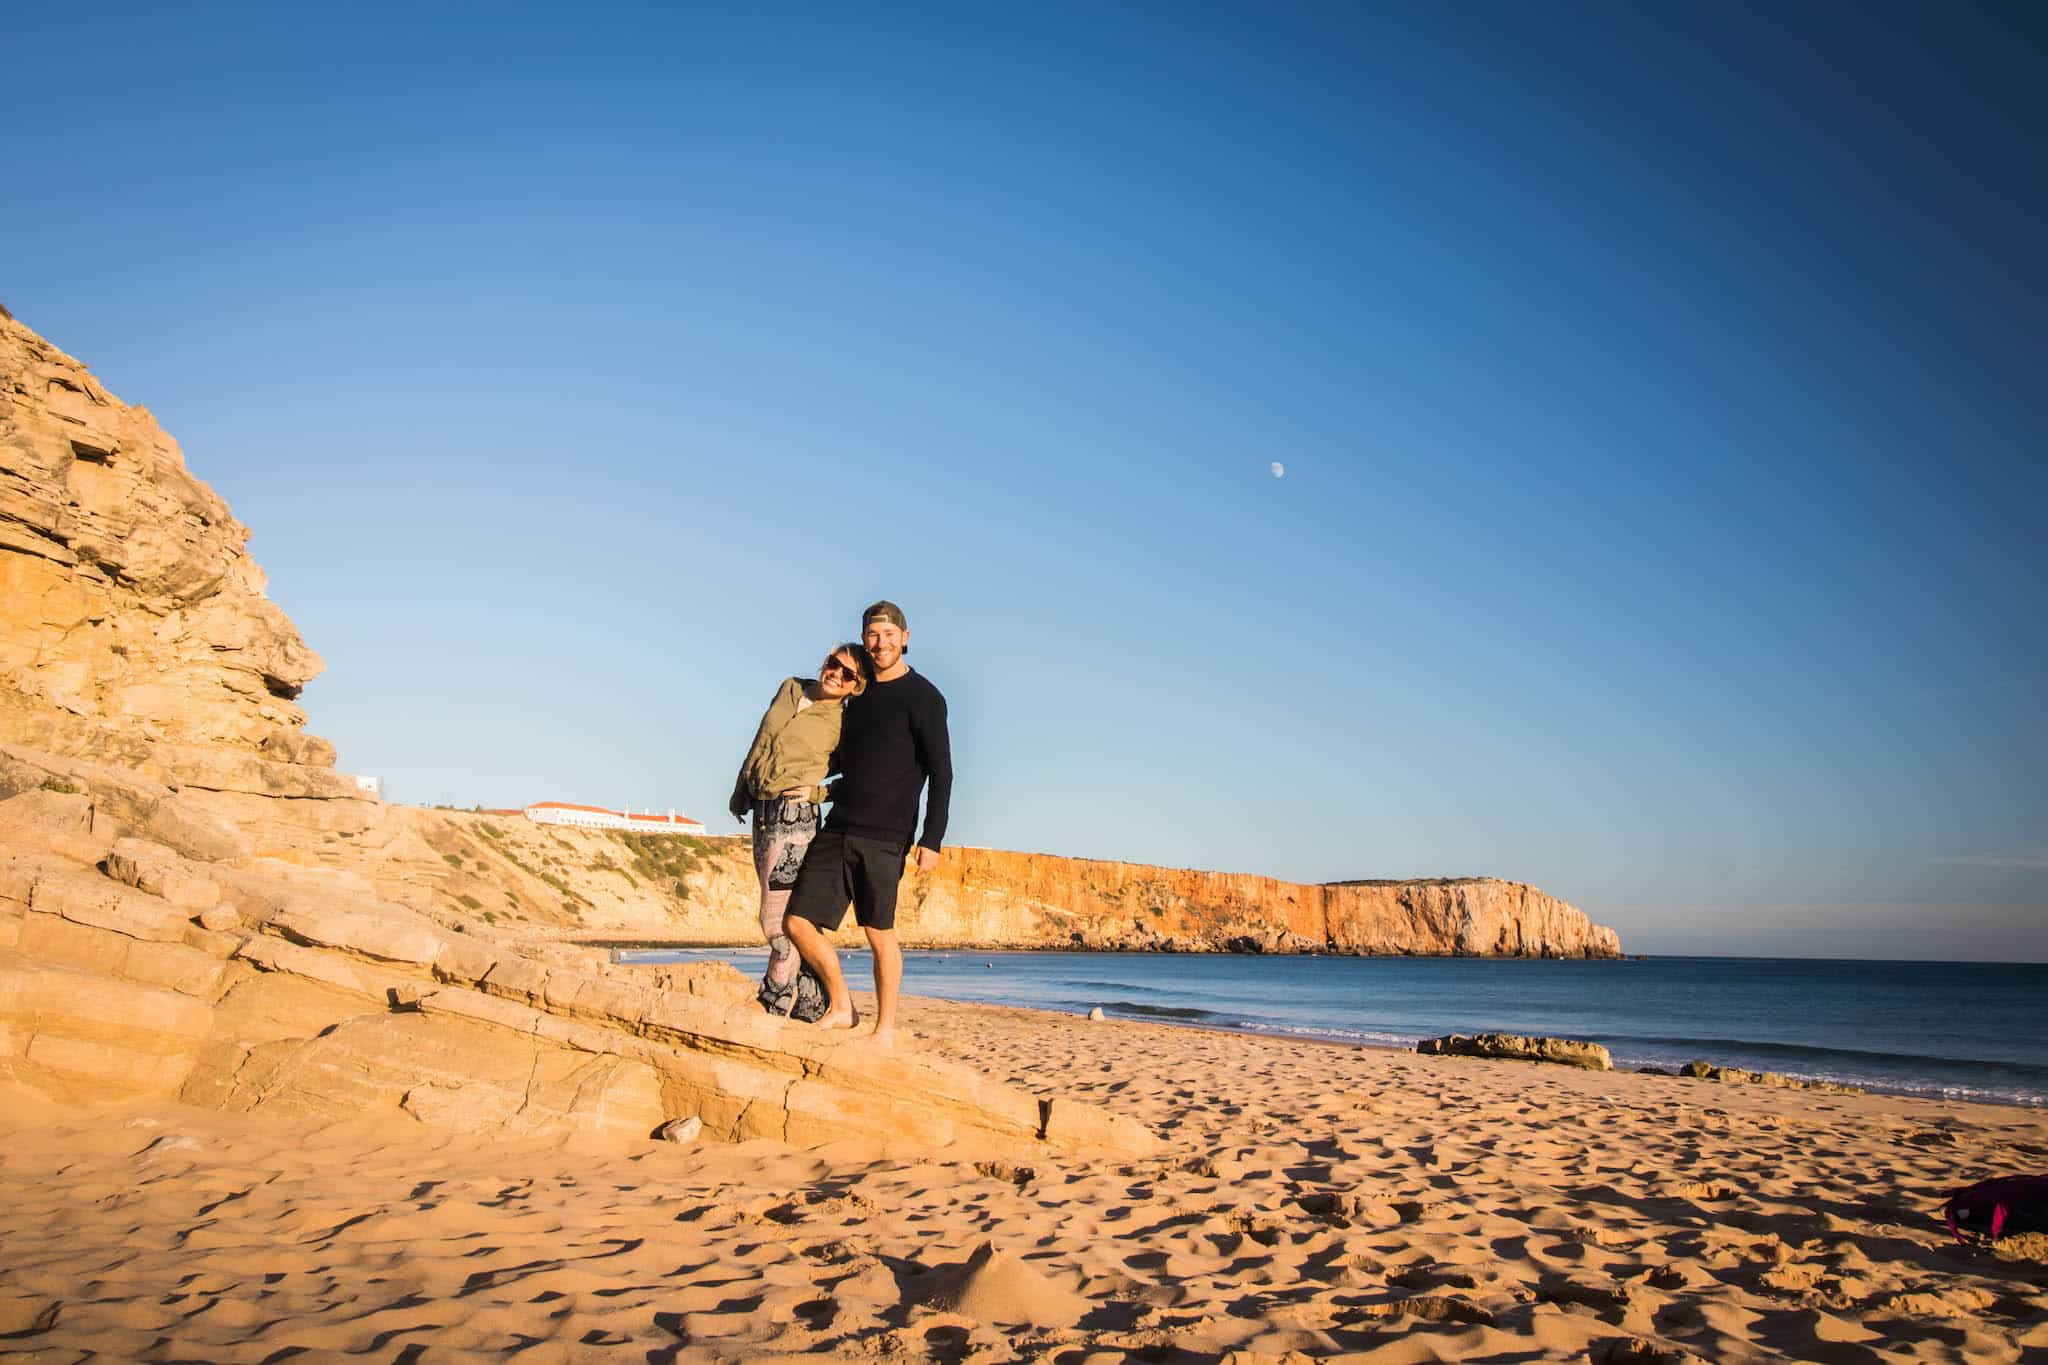 Praia do Tonel - Best Beaches in Algarve